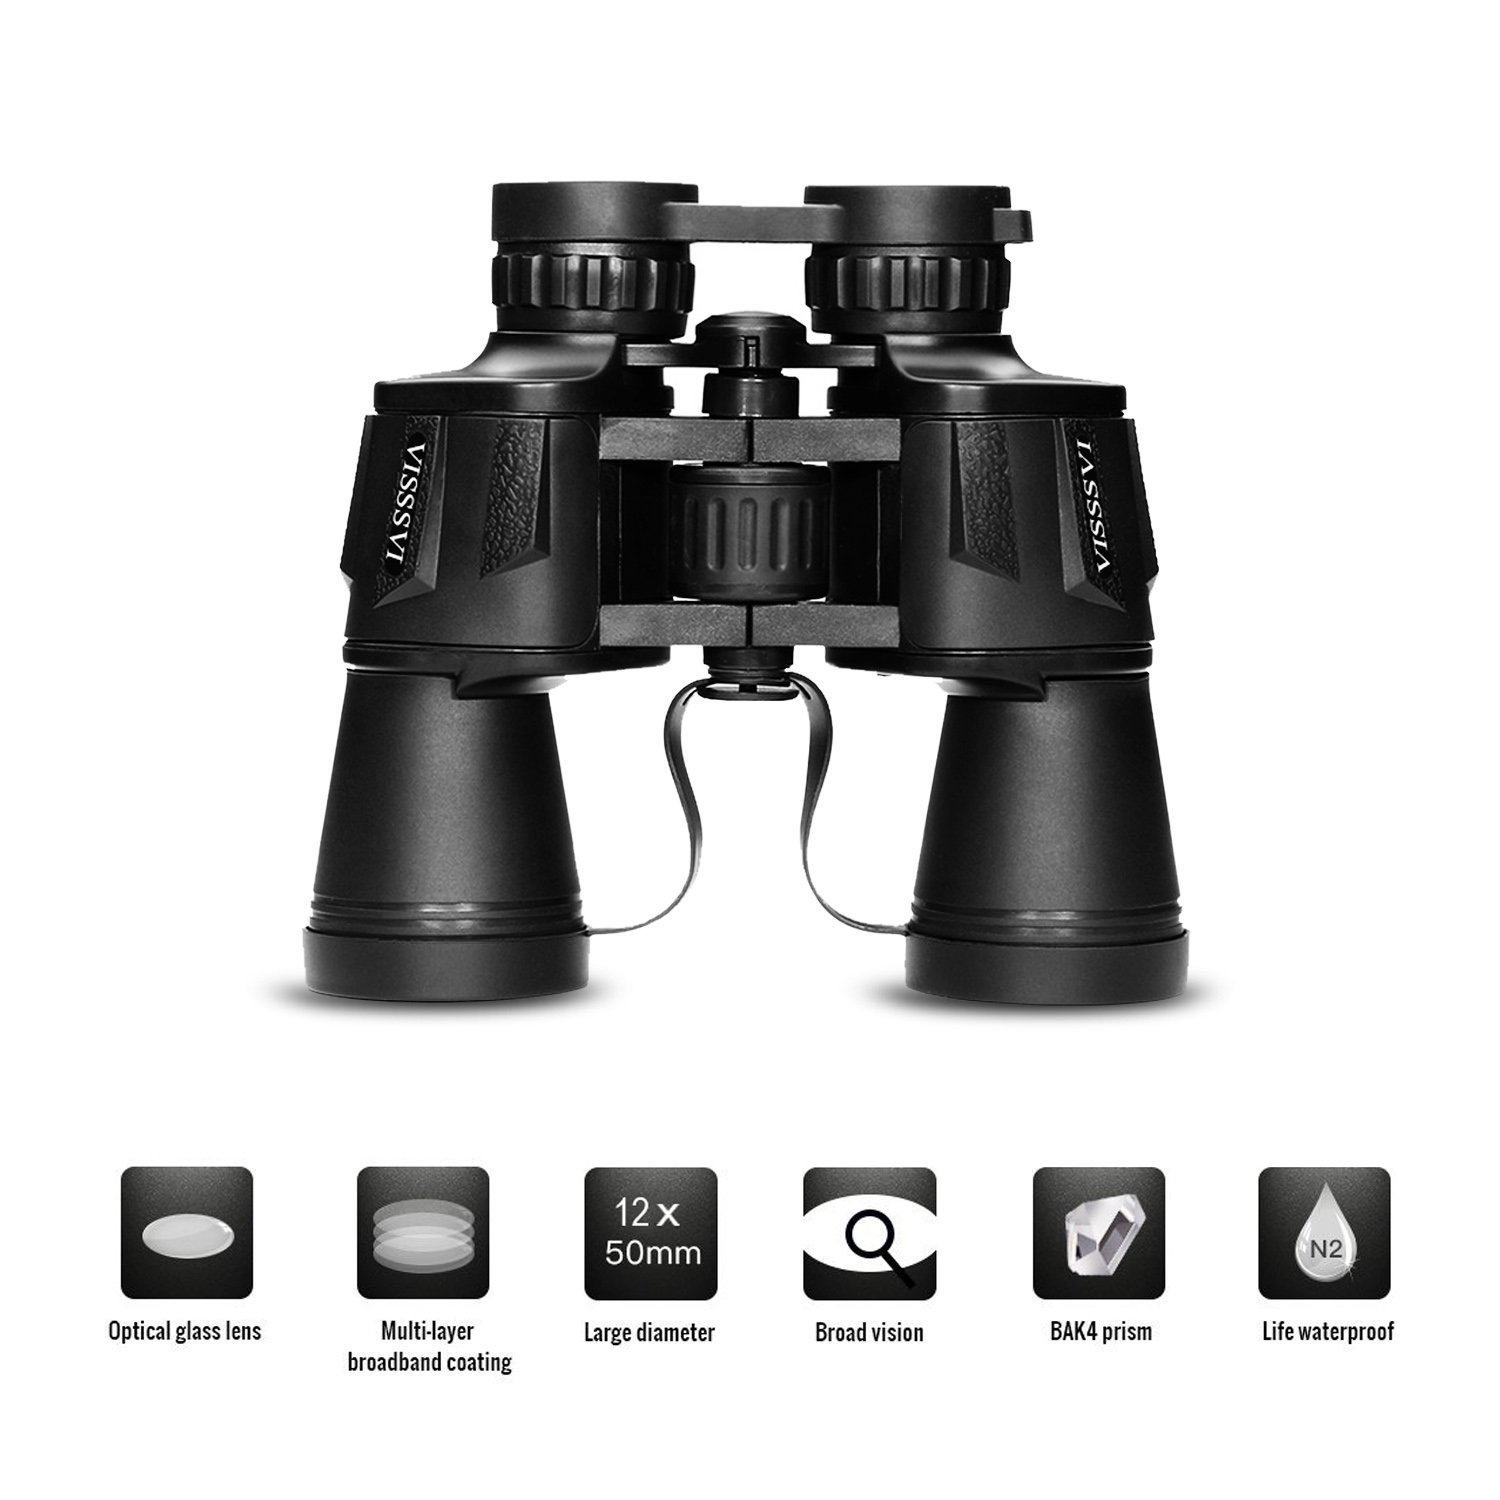 VISSSVI 12x50 Zoom Binoculars Compact Folding Durable for Professional Traveler Wide Field of View, More Clear Great for Camping, Hunting, Travelling, Concert, Surveillance Carrying case Strap